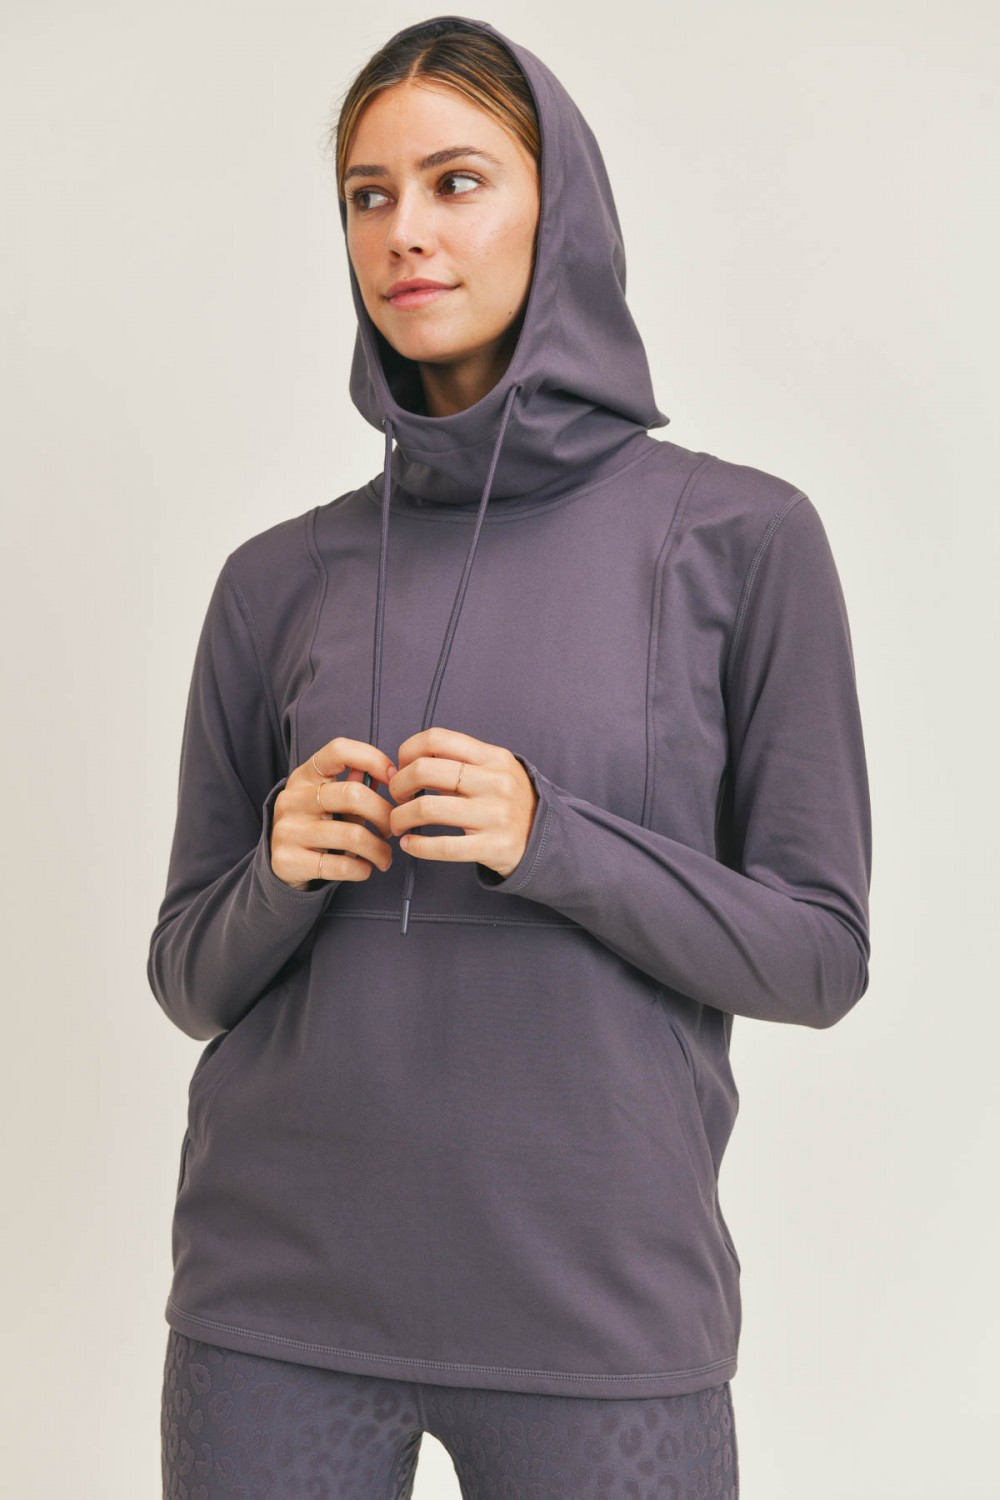 AT8044<br/>Mono B GREEN Boxy Active Essential Hoodie Pullover with Thumb Holes (AT8044)